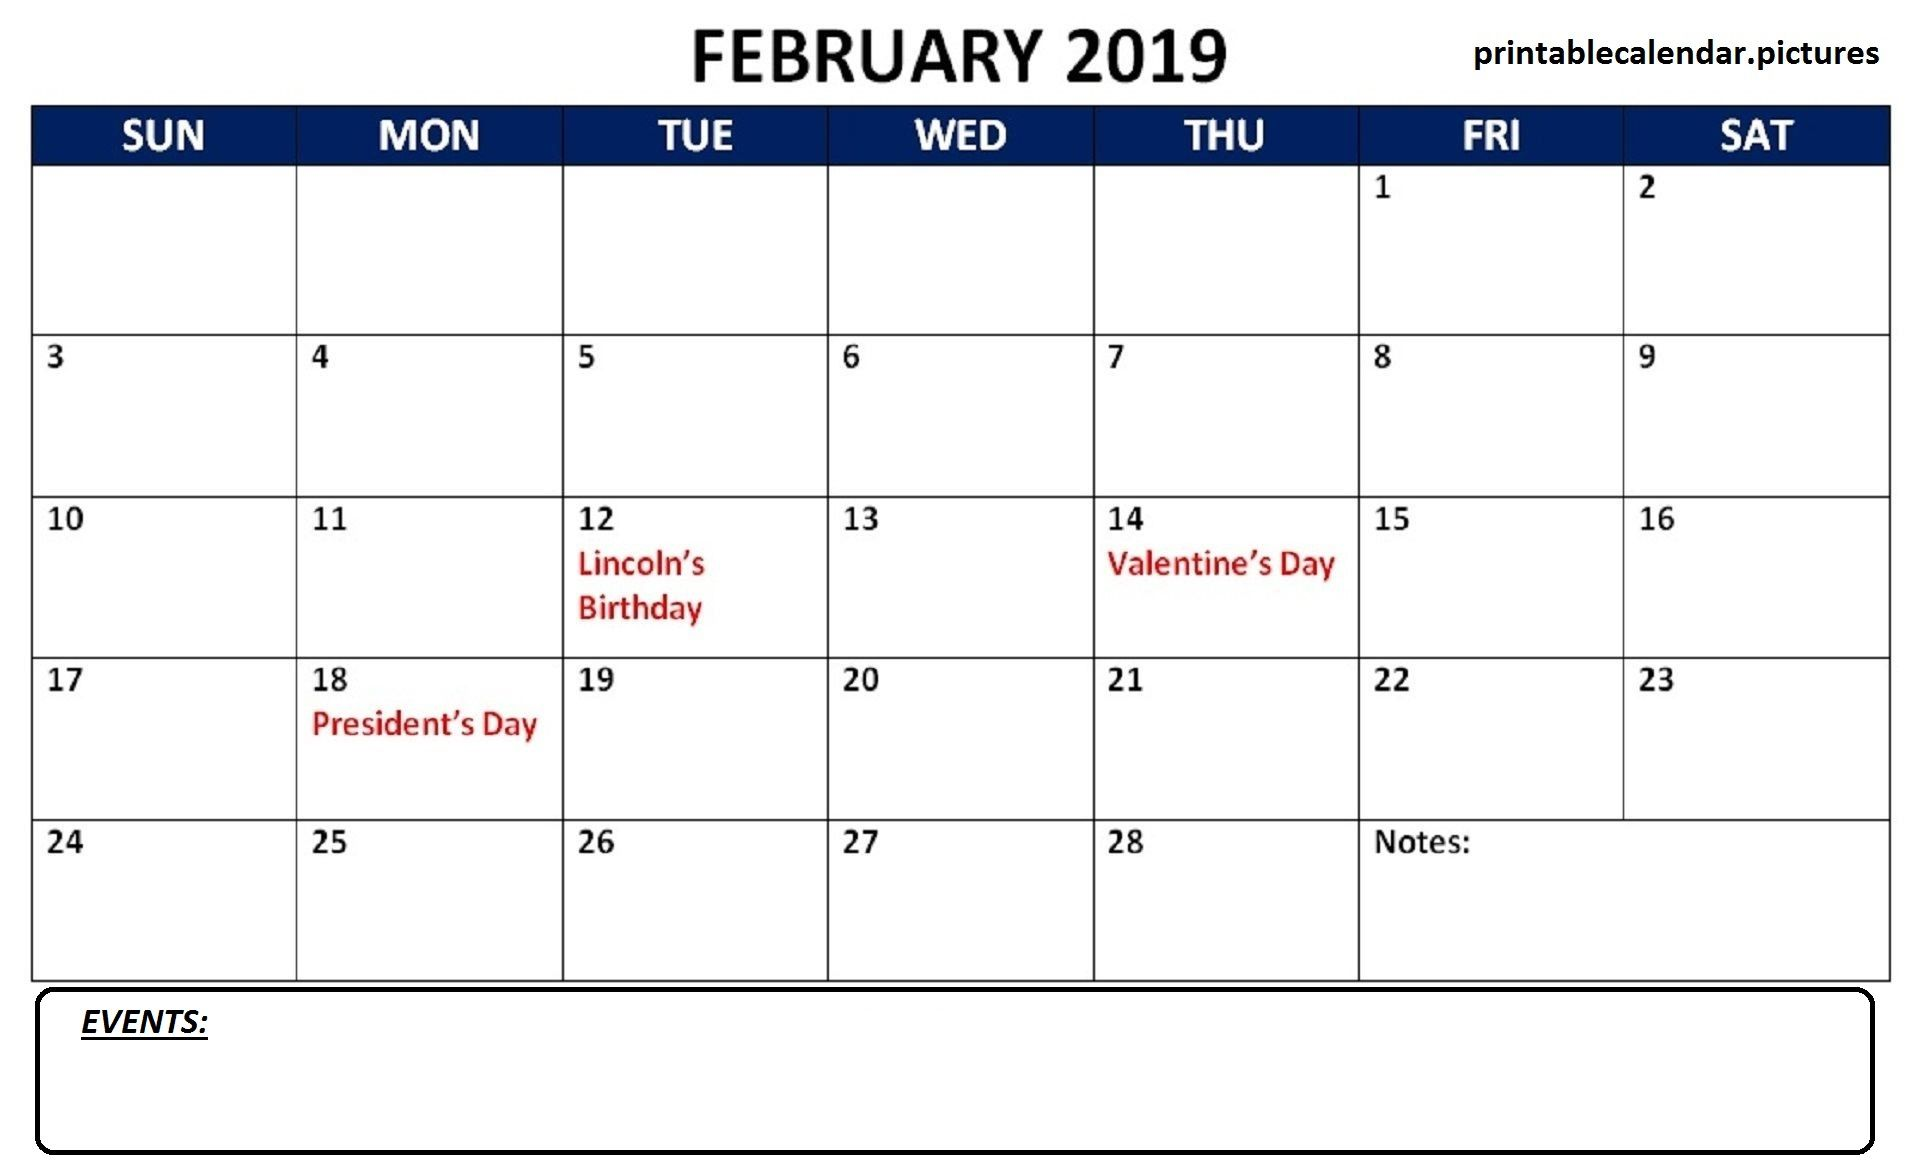 February 2019 Calendar Word Template To Print Calendar Of February